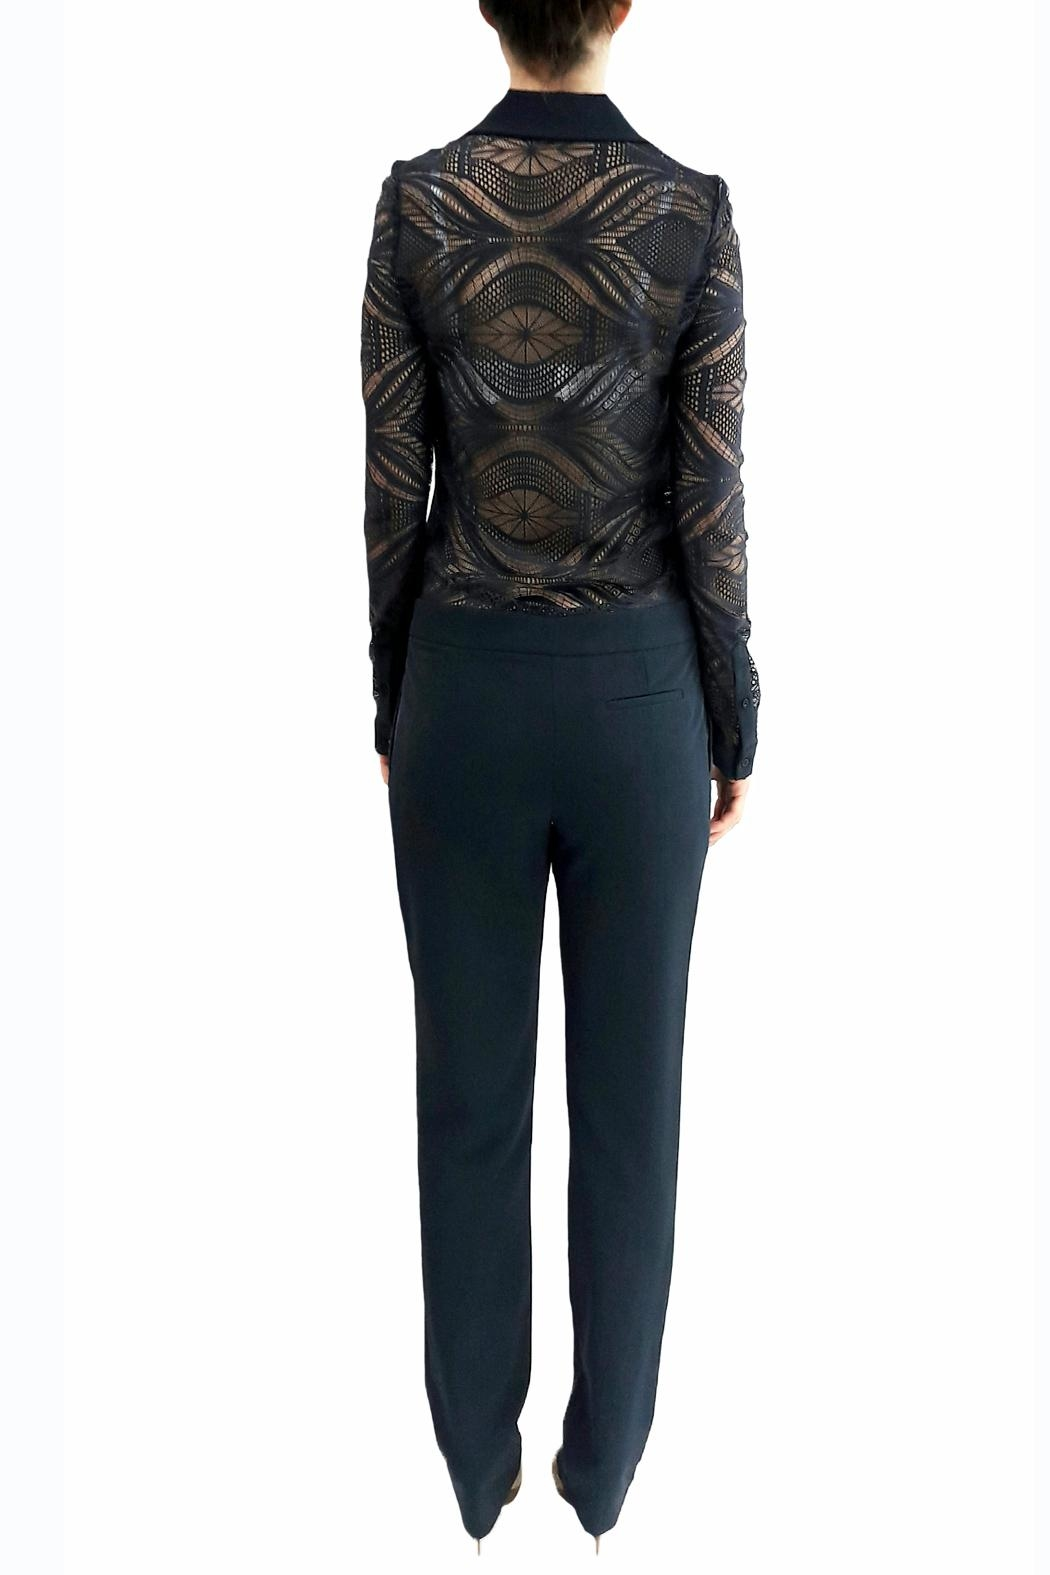 hotel particulier Navy Lace Jumpsuit - Side Cropped Image